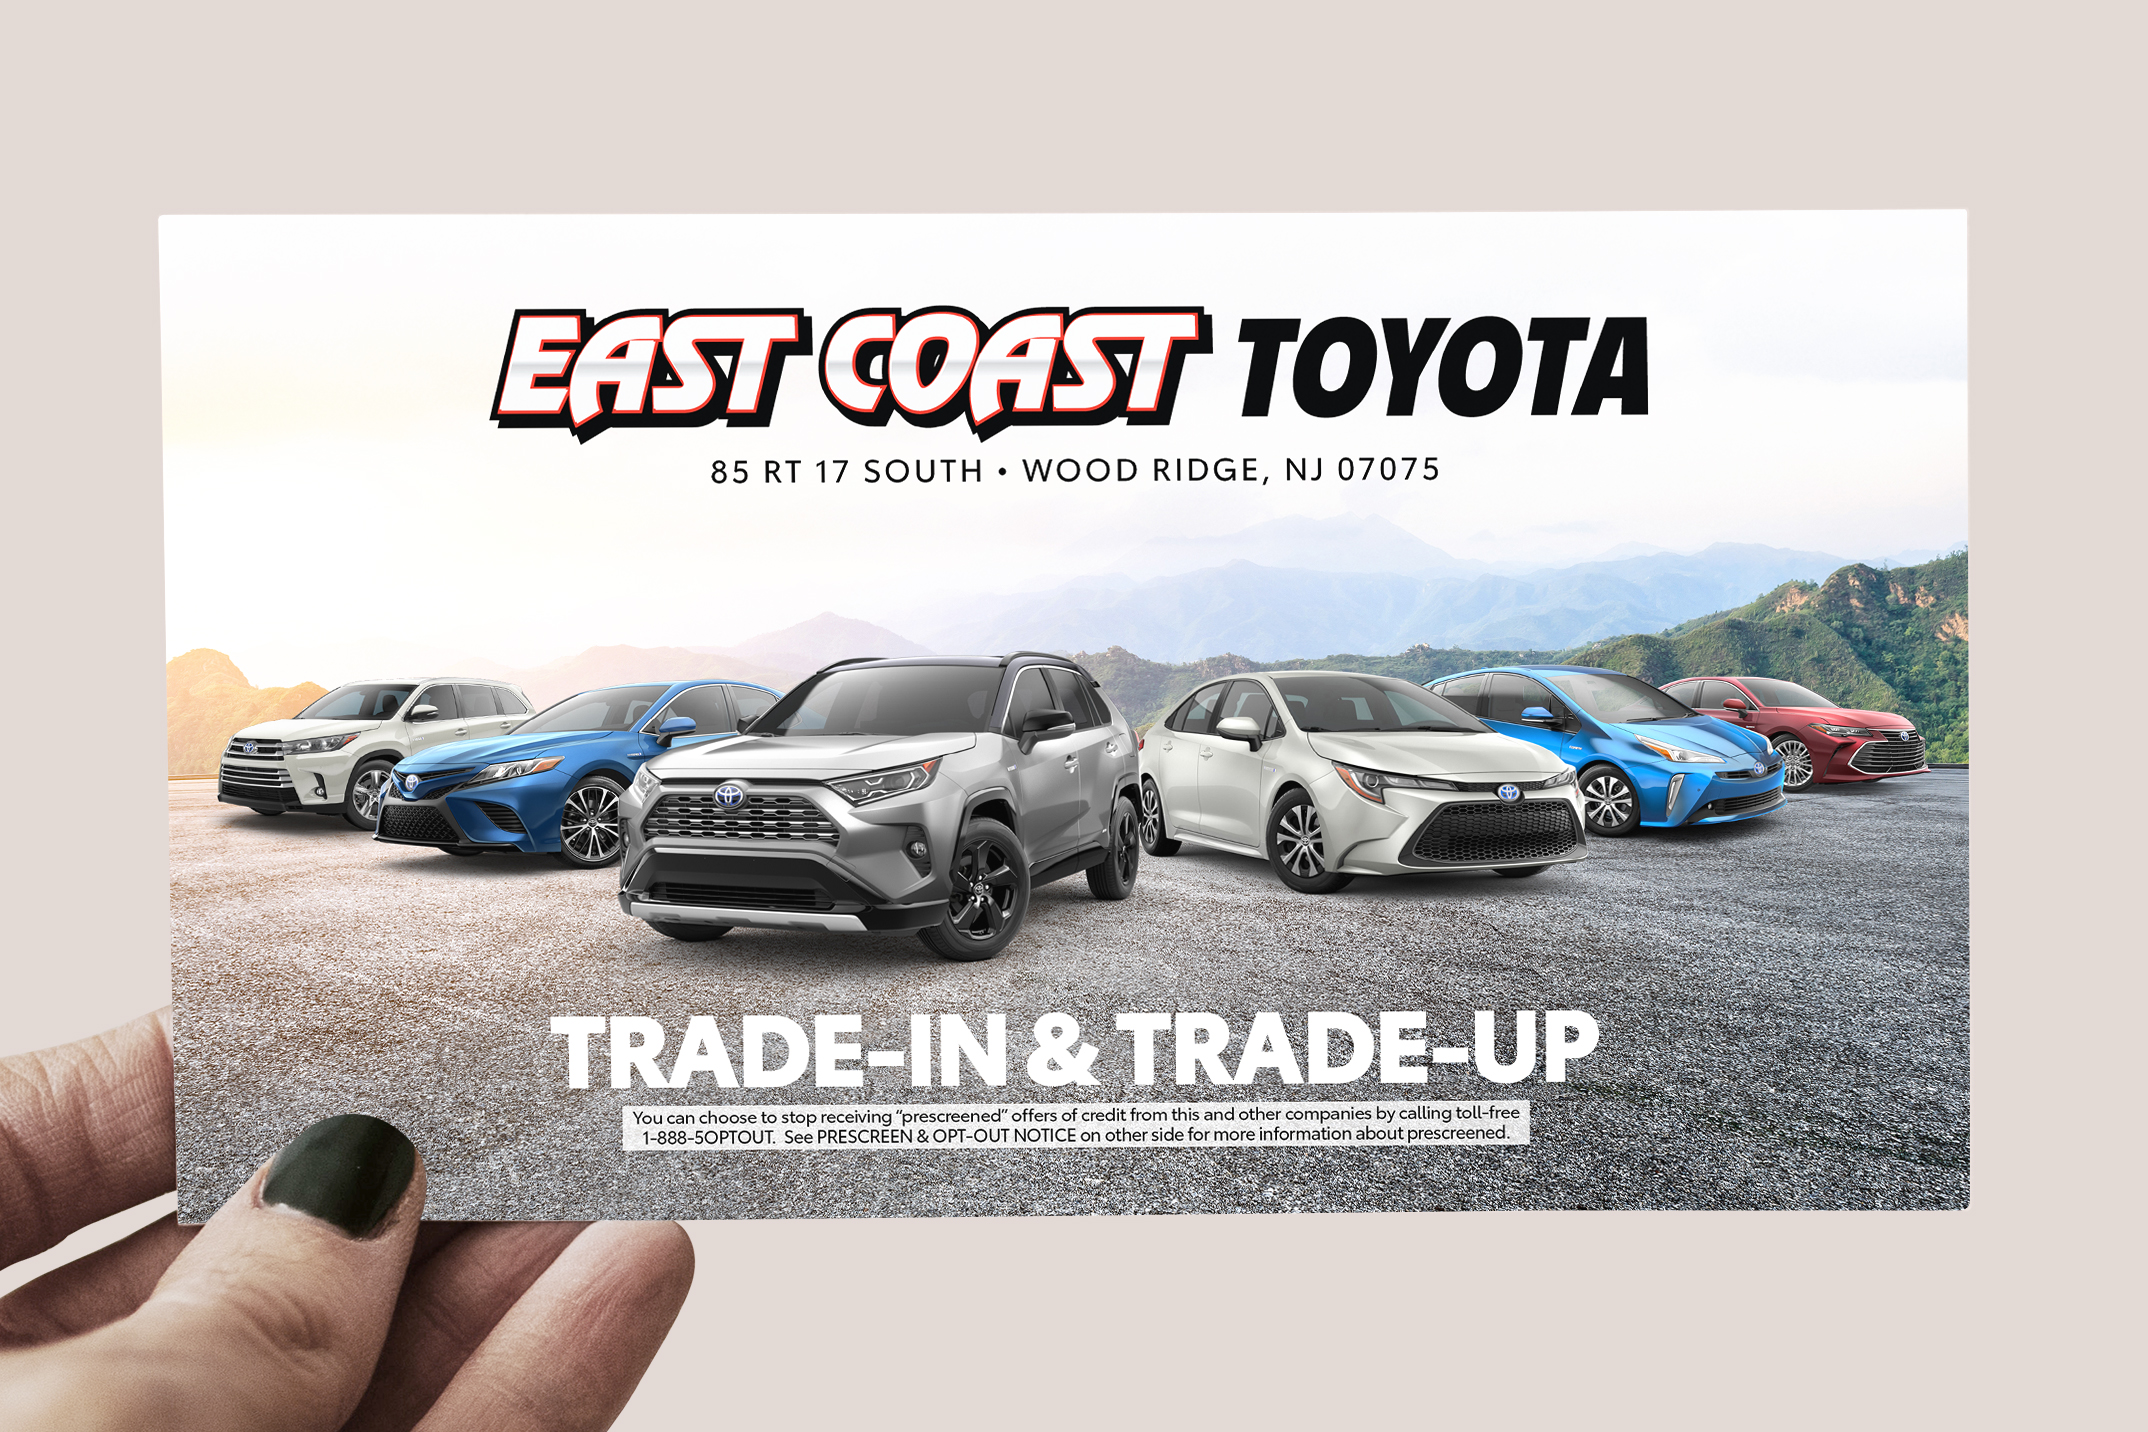 This is a piece of direct mail I designed for a North Jersey Toyota Dealership.